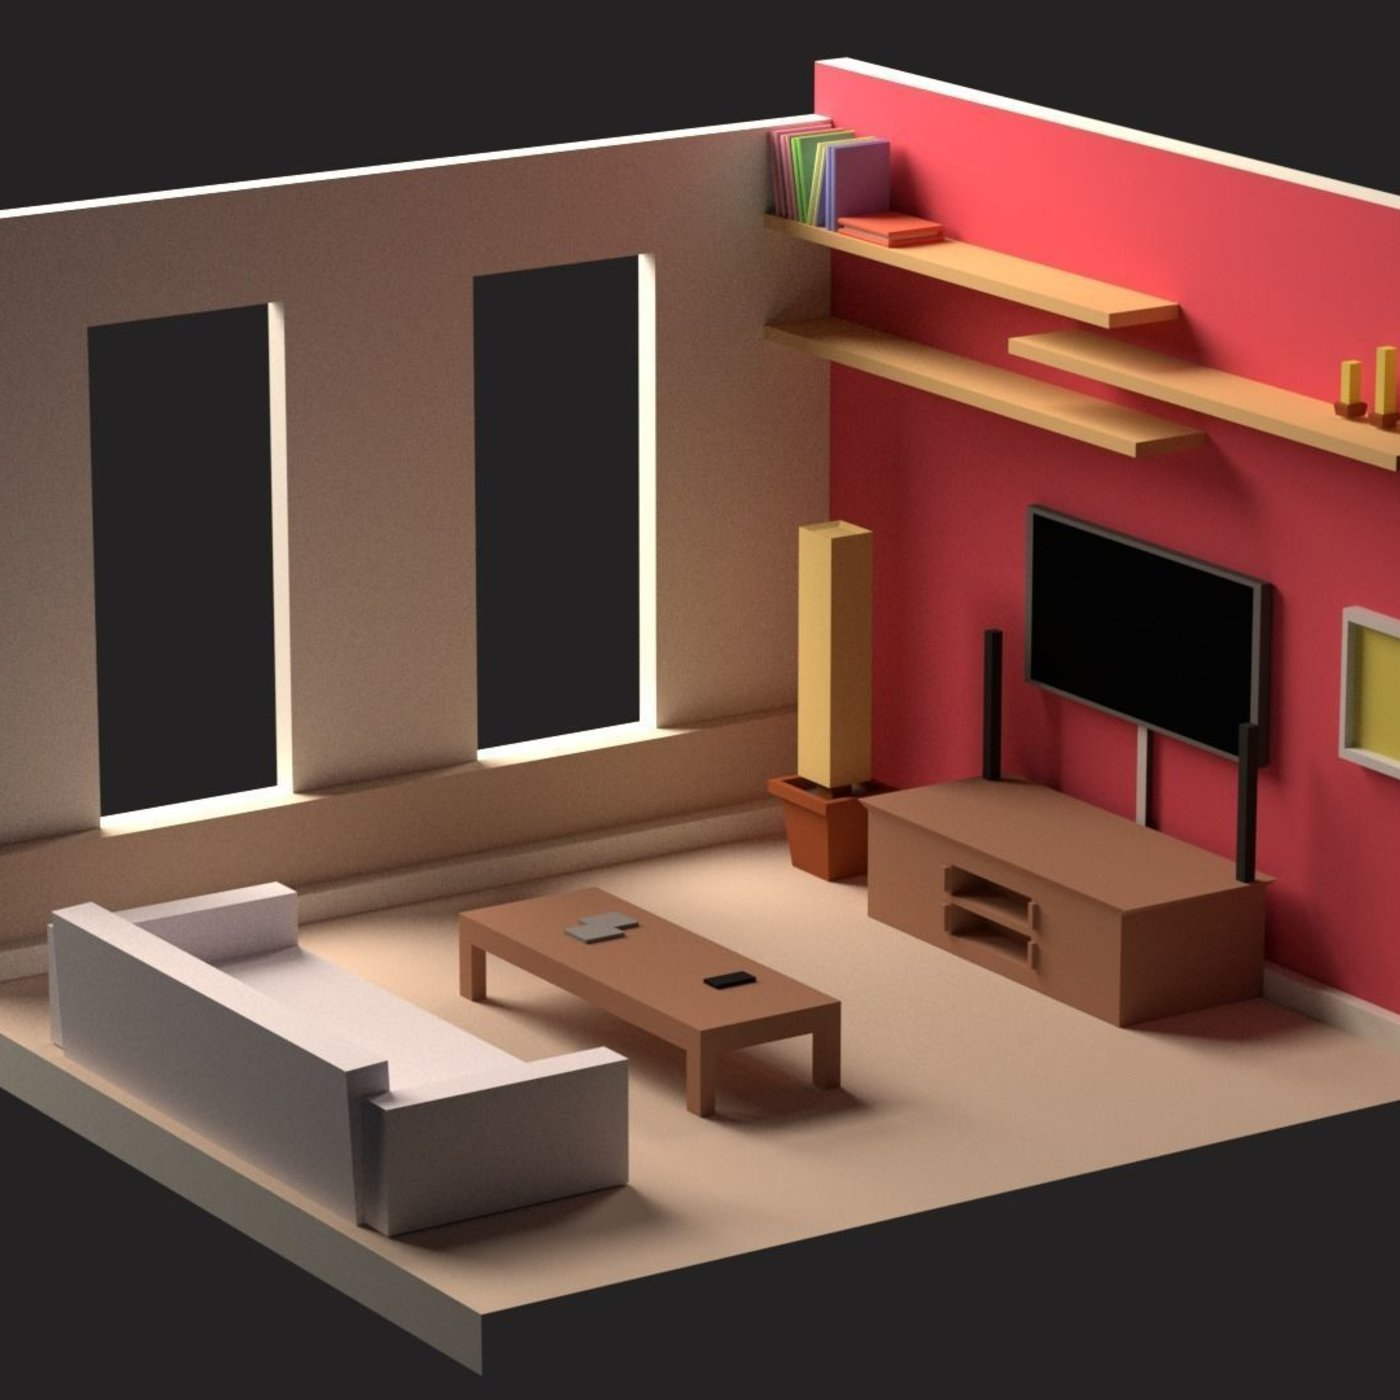 Isometric low poly interiors